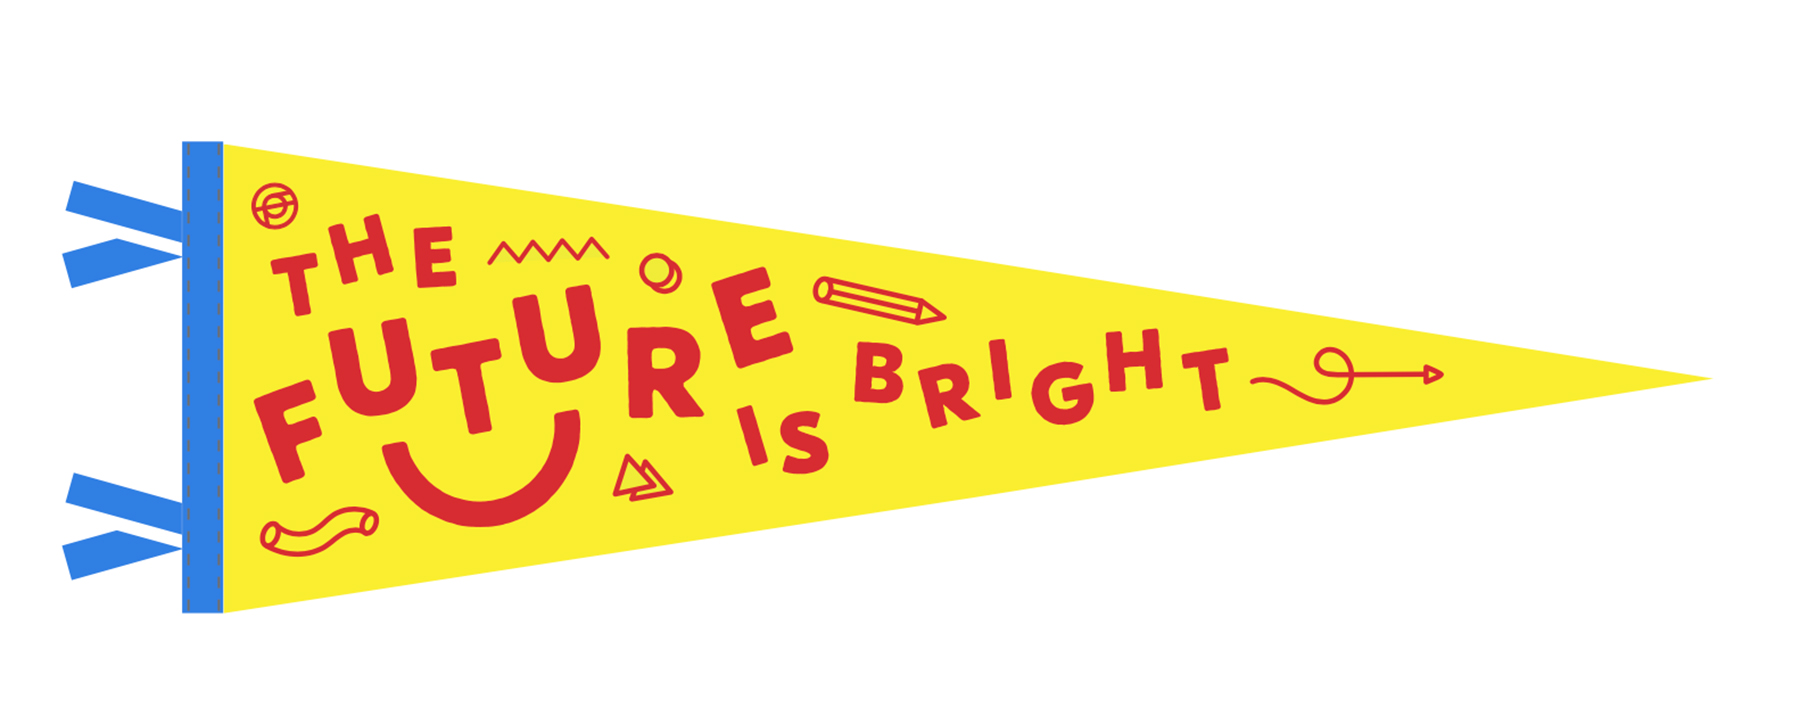 Pennant for the show